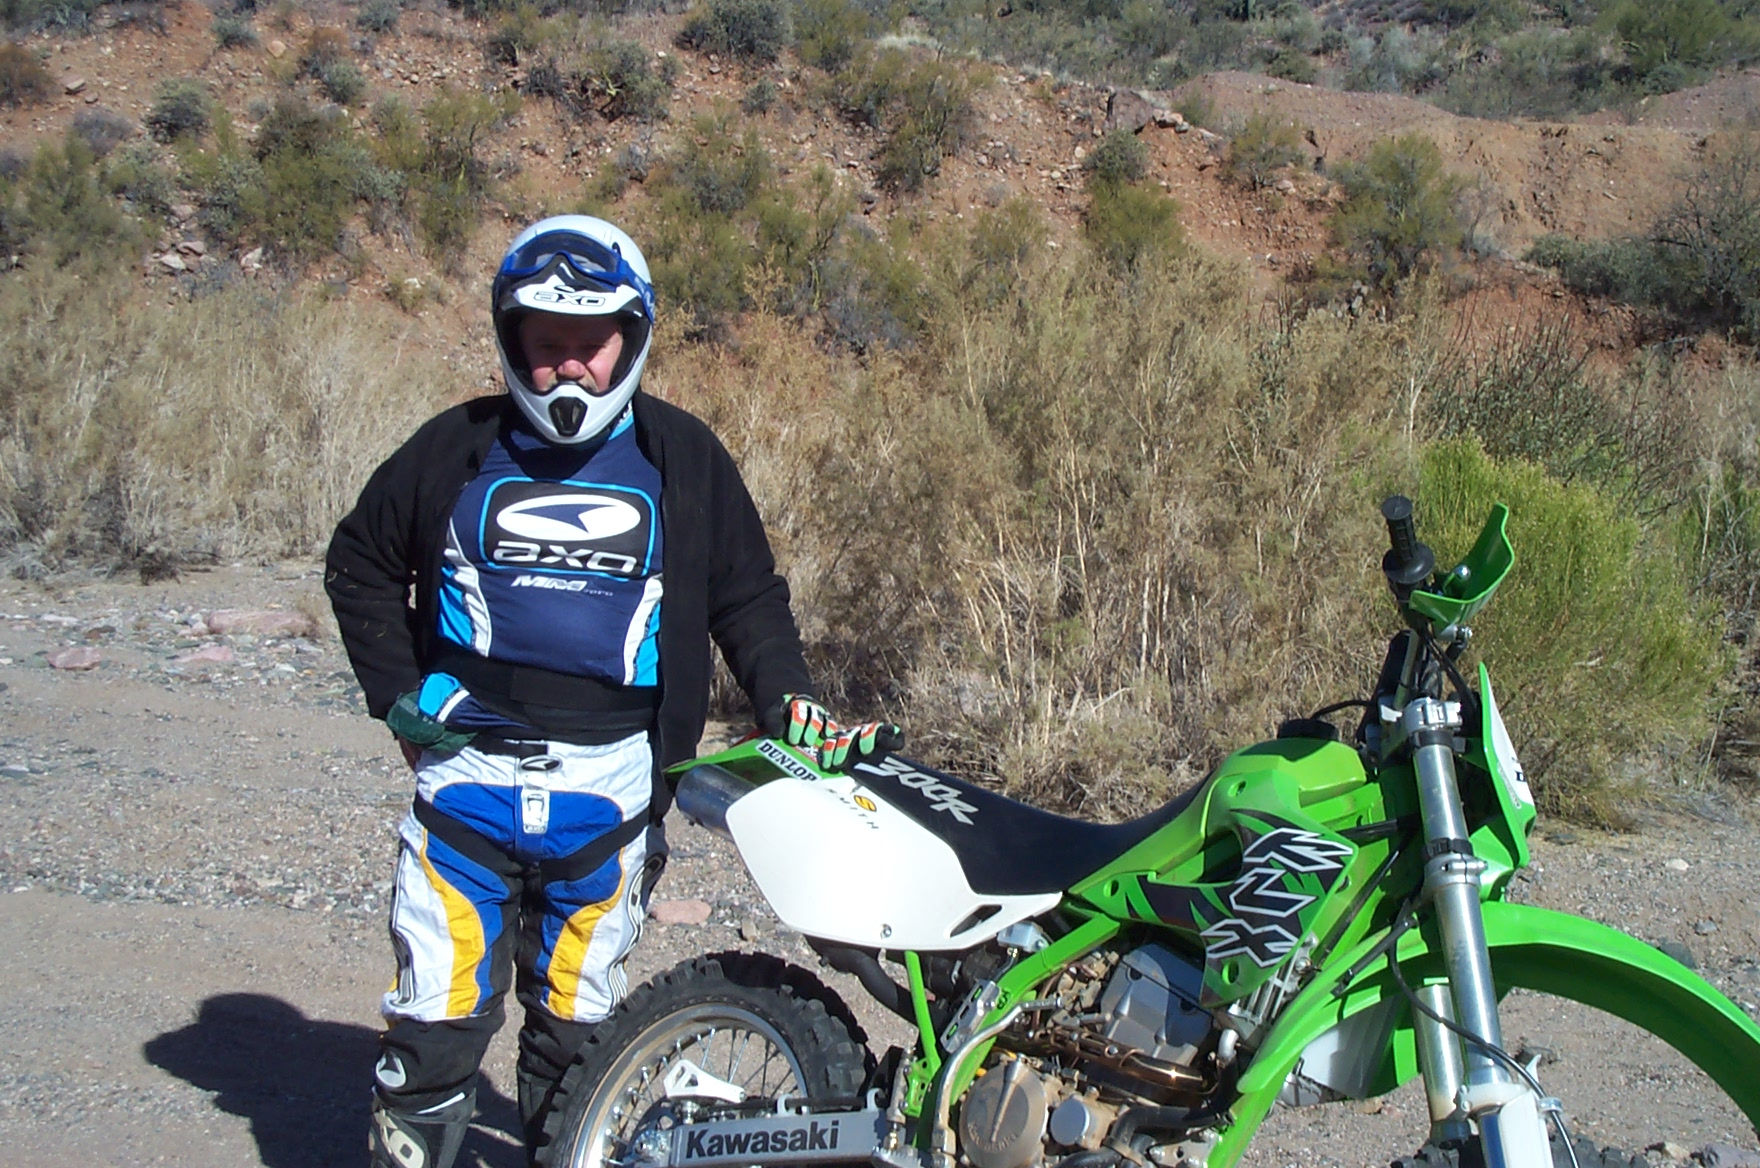 Man on a KLX motorcycle